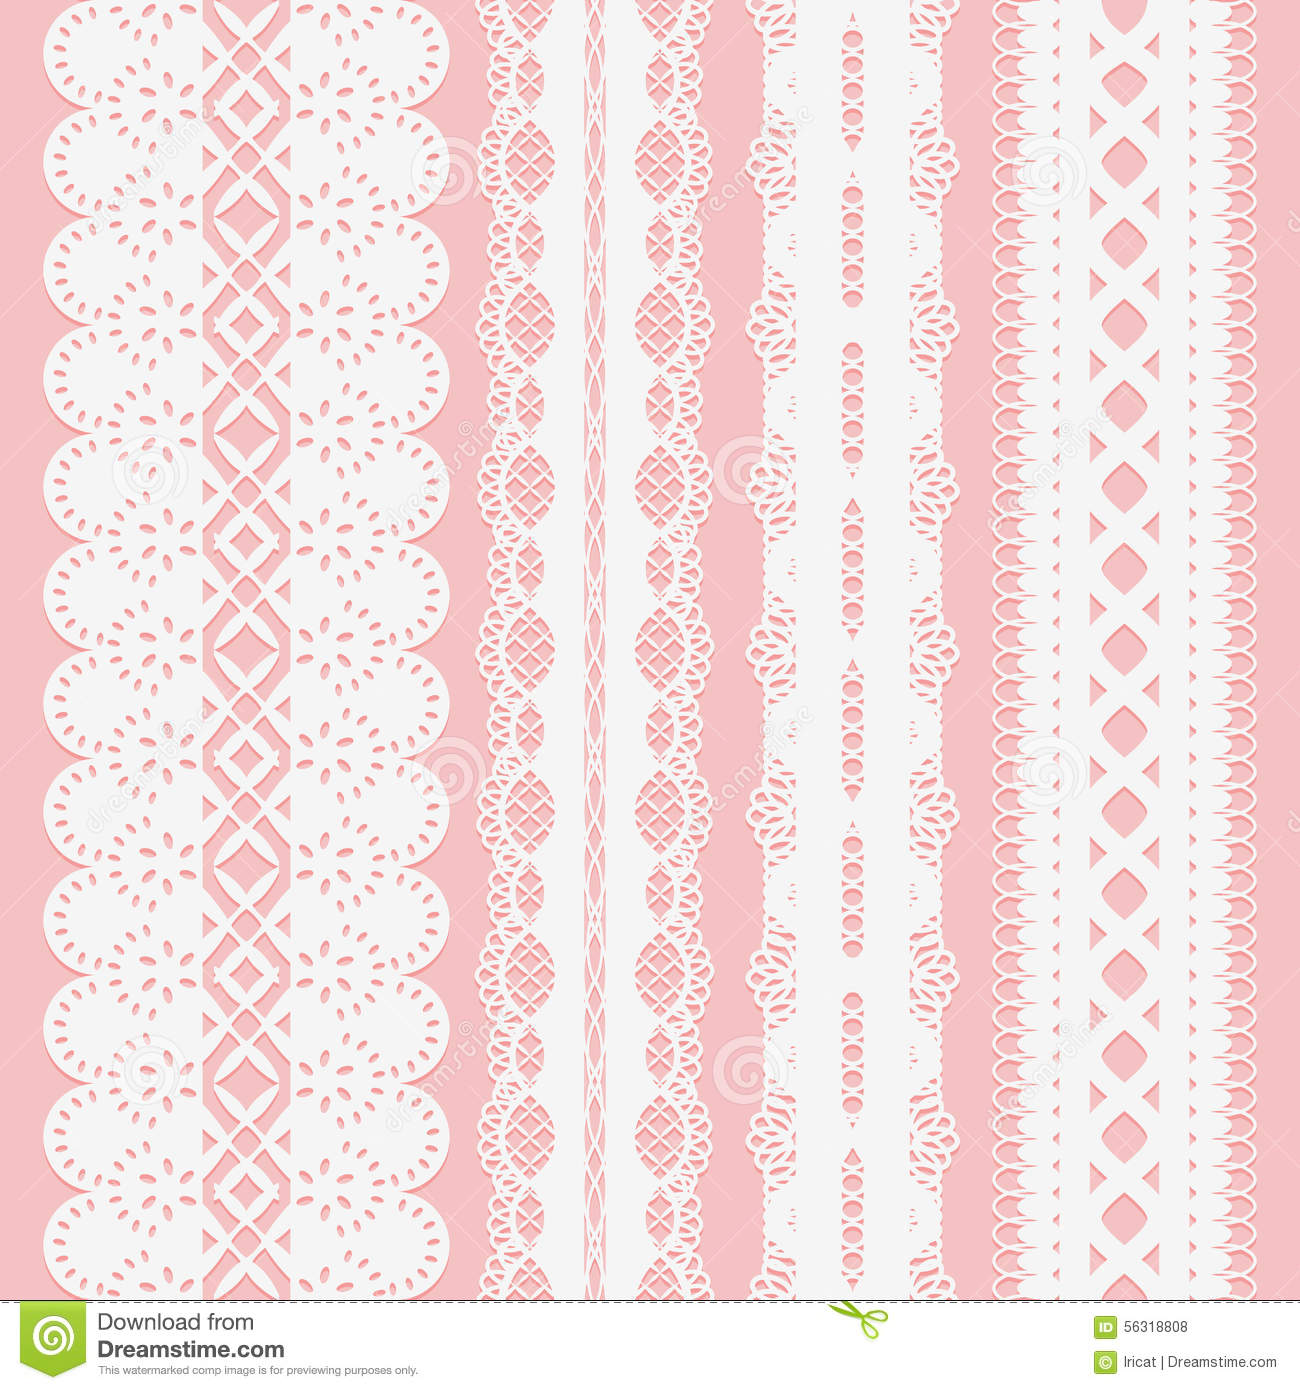 Set of seamless white lace ribbons on a pink background for scrapbooking.